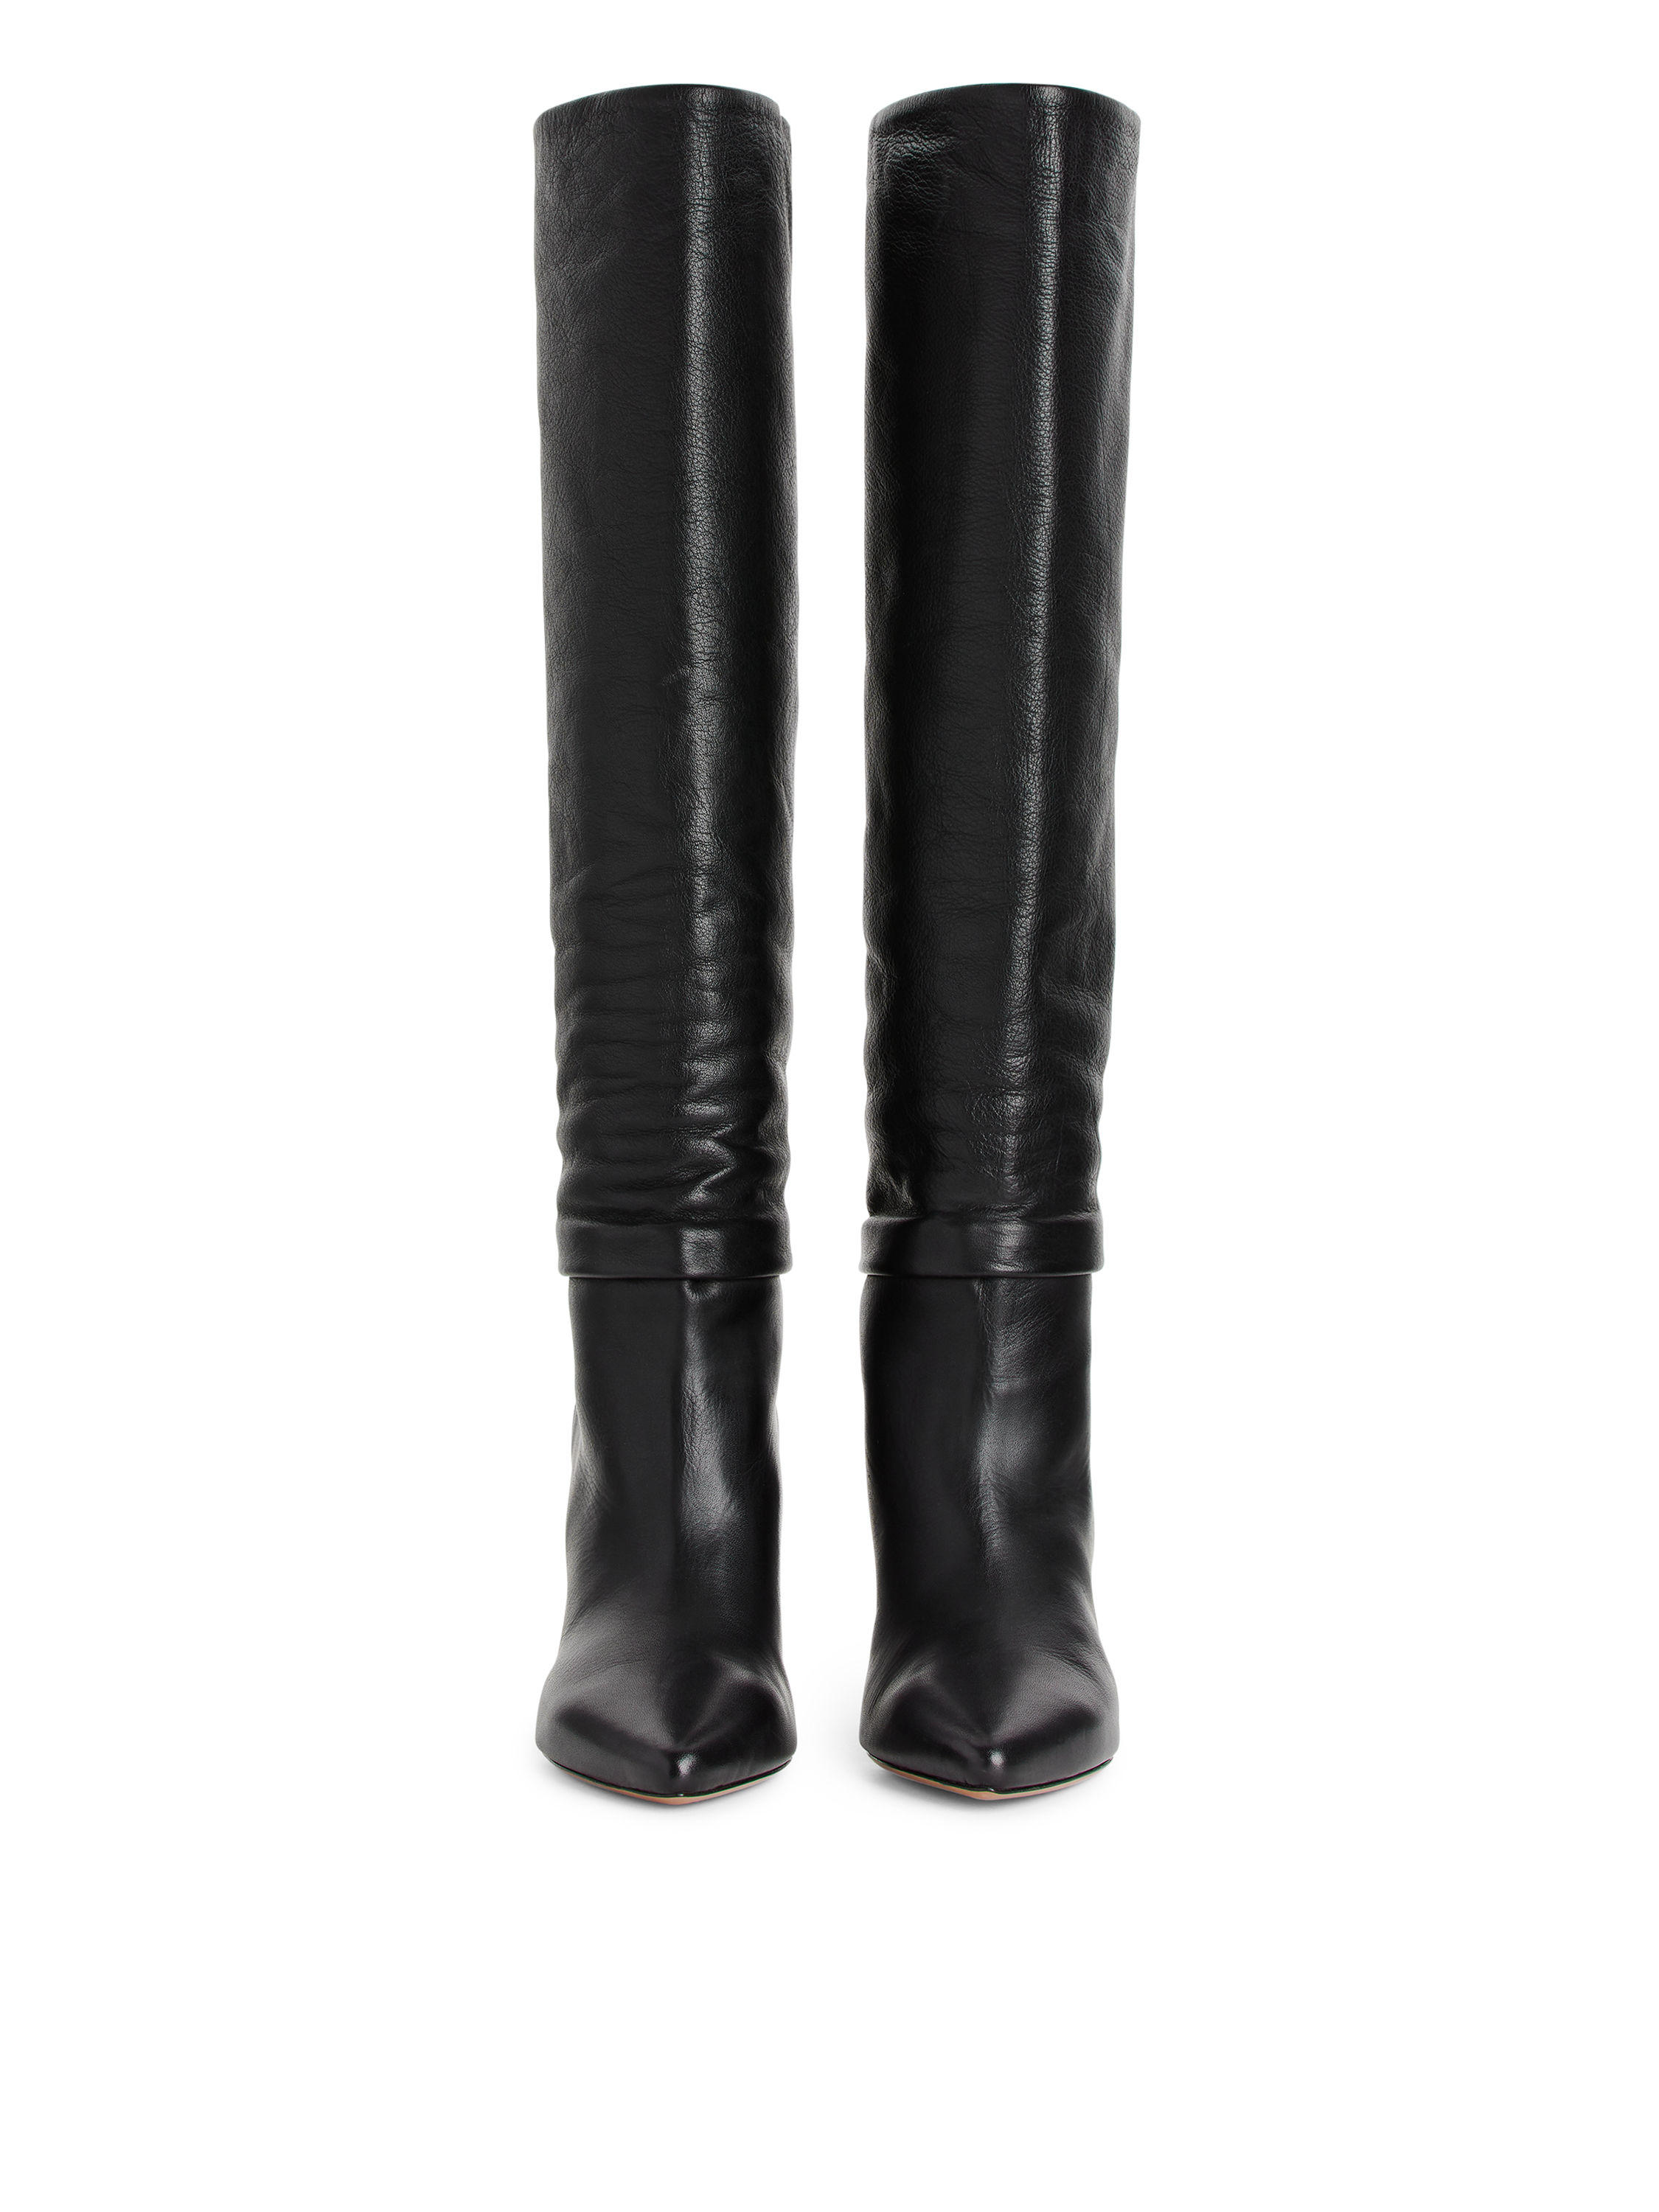 Fabric Swatch image of Arket knee-high slouch leather boots in black